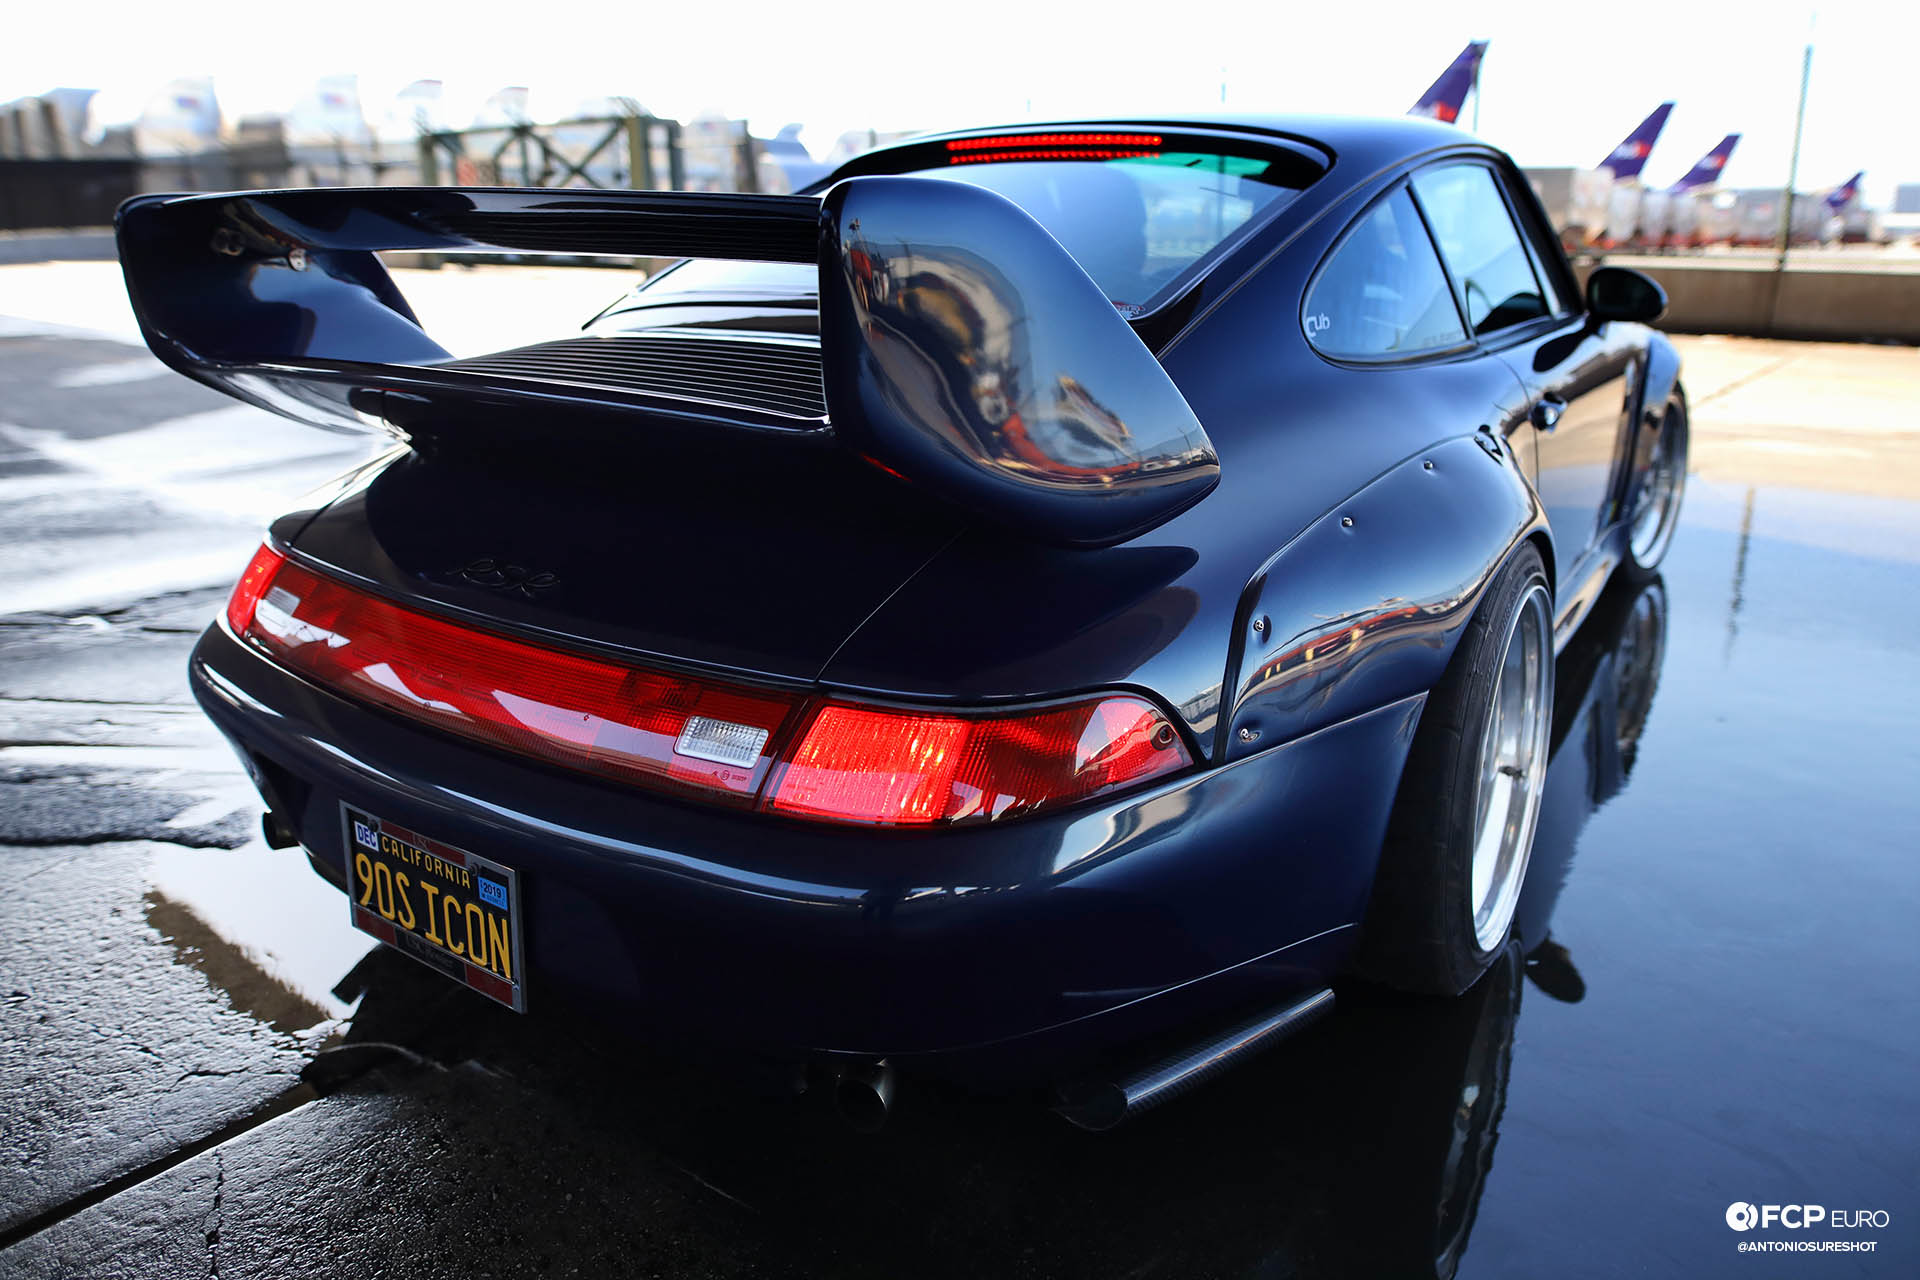 1996 Porsche 911 Carrera 993 RWB rear